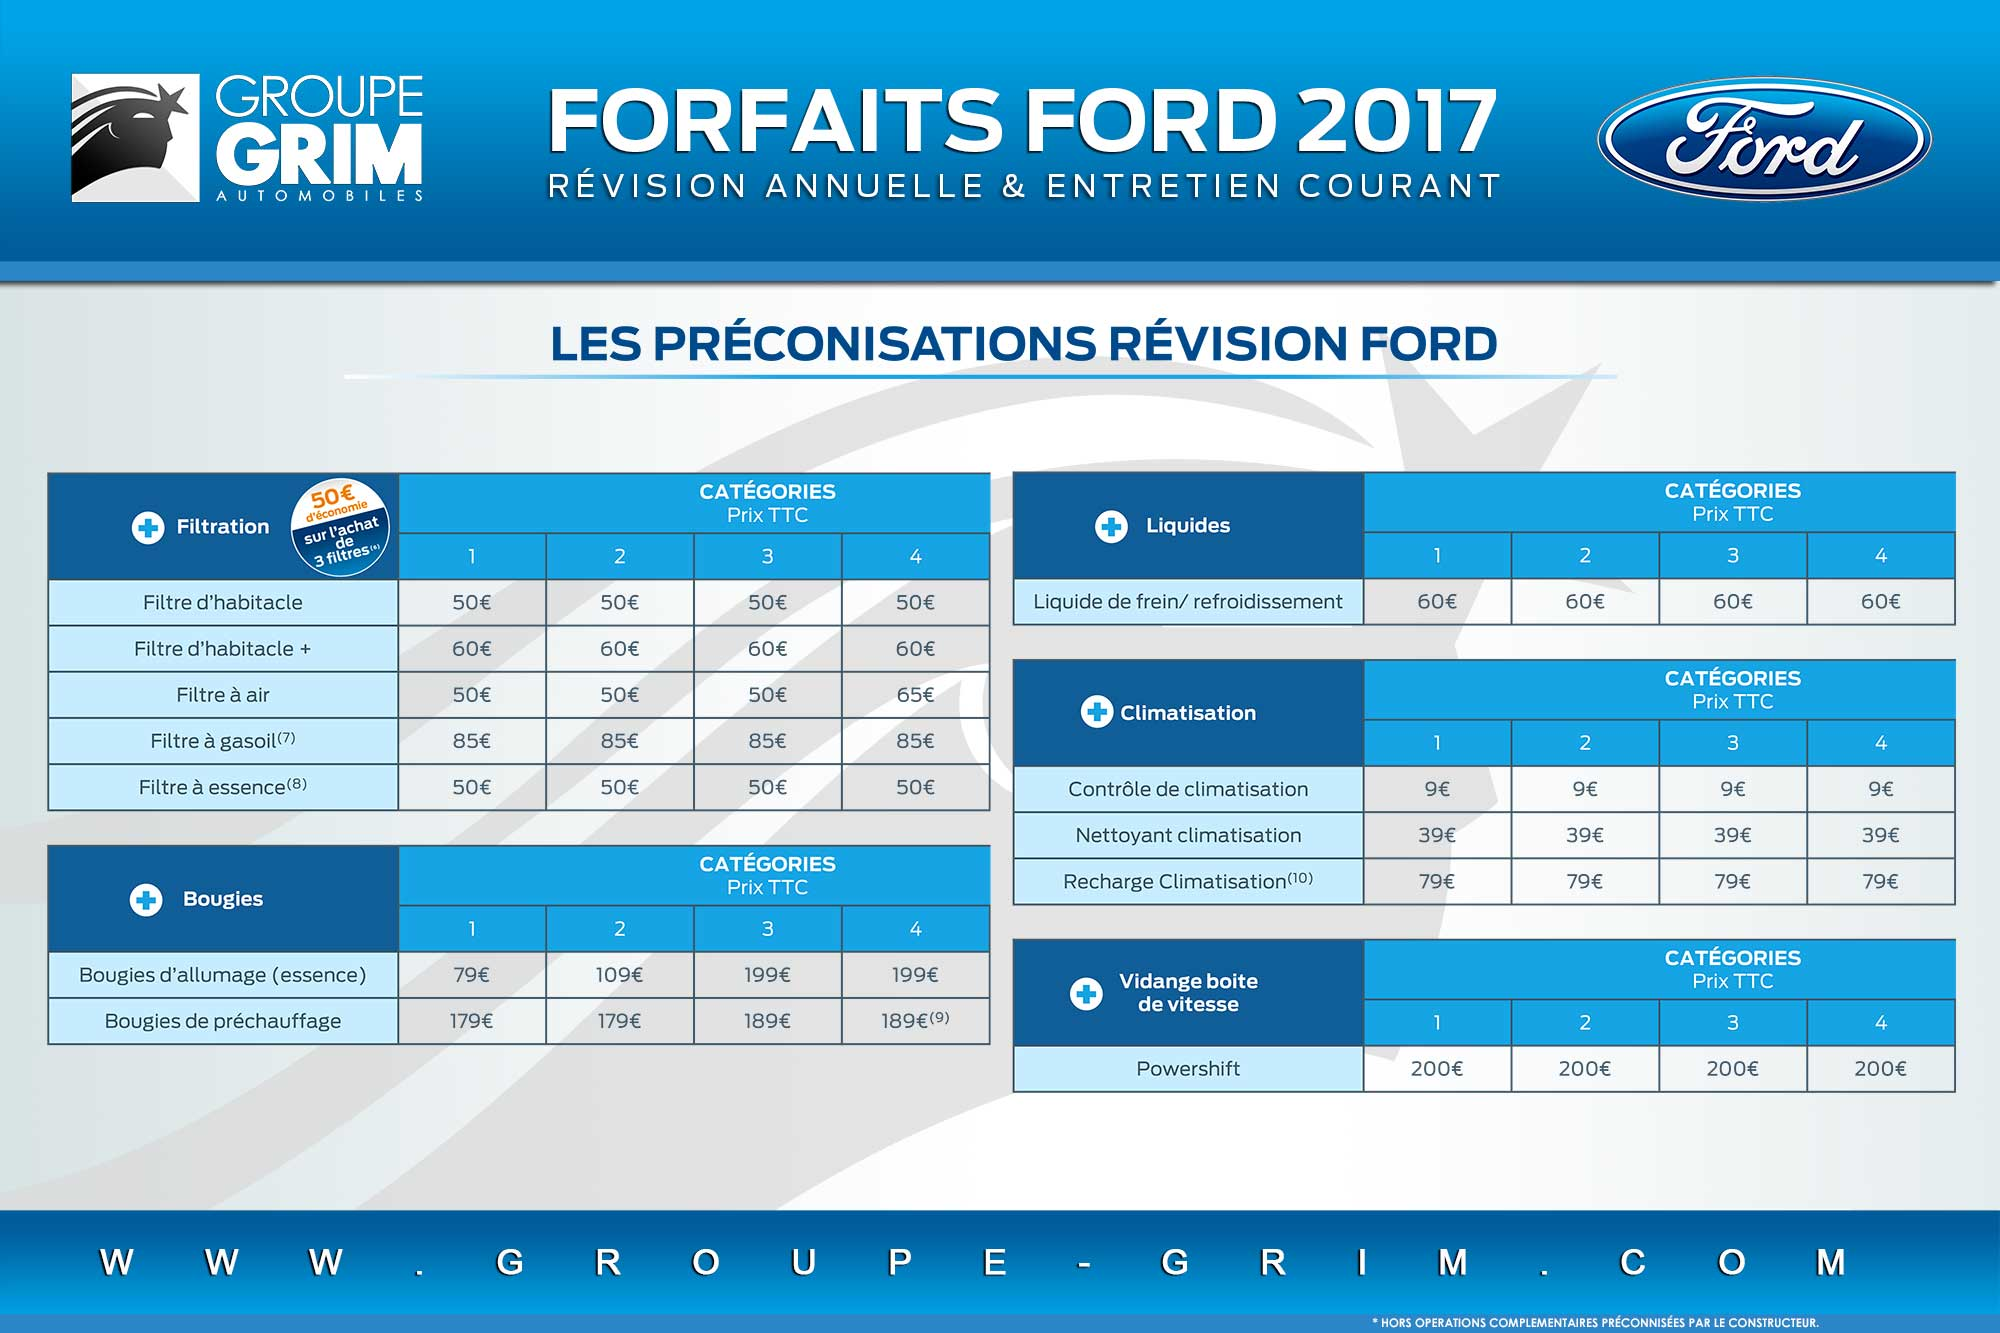 tarifs pi ces et main d uvre ford 2017 ford grim auto savab saval fordstore ford rodez. Black Bedroom Furniture Sets. Home Design Ideas